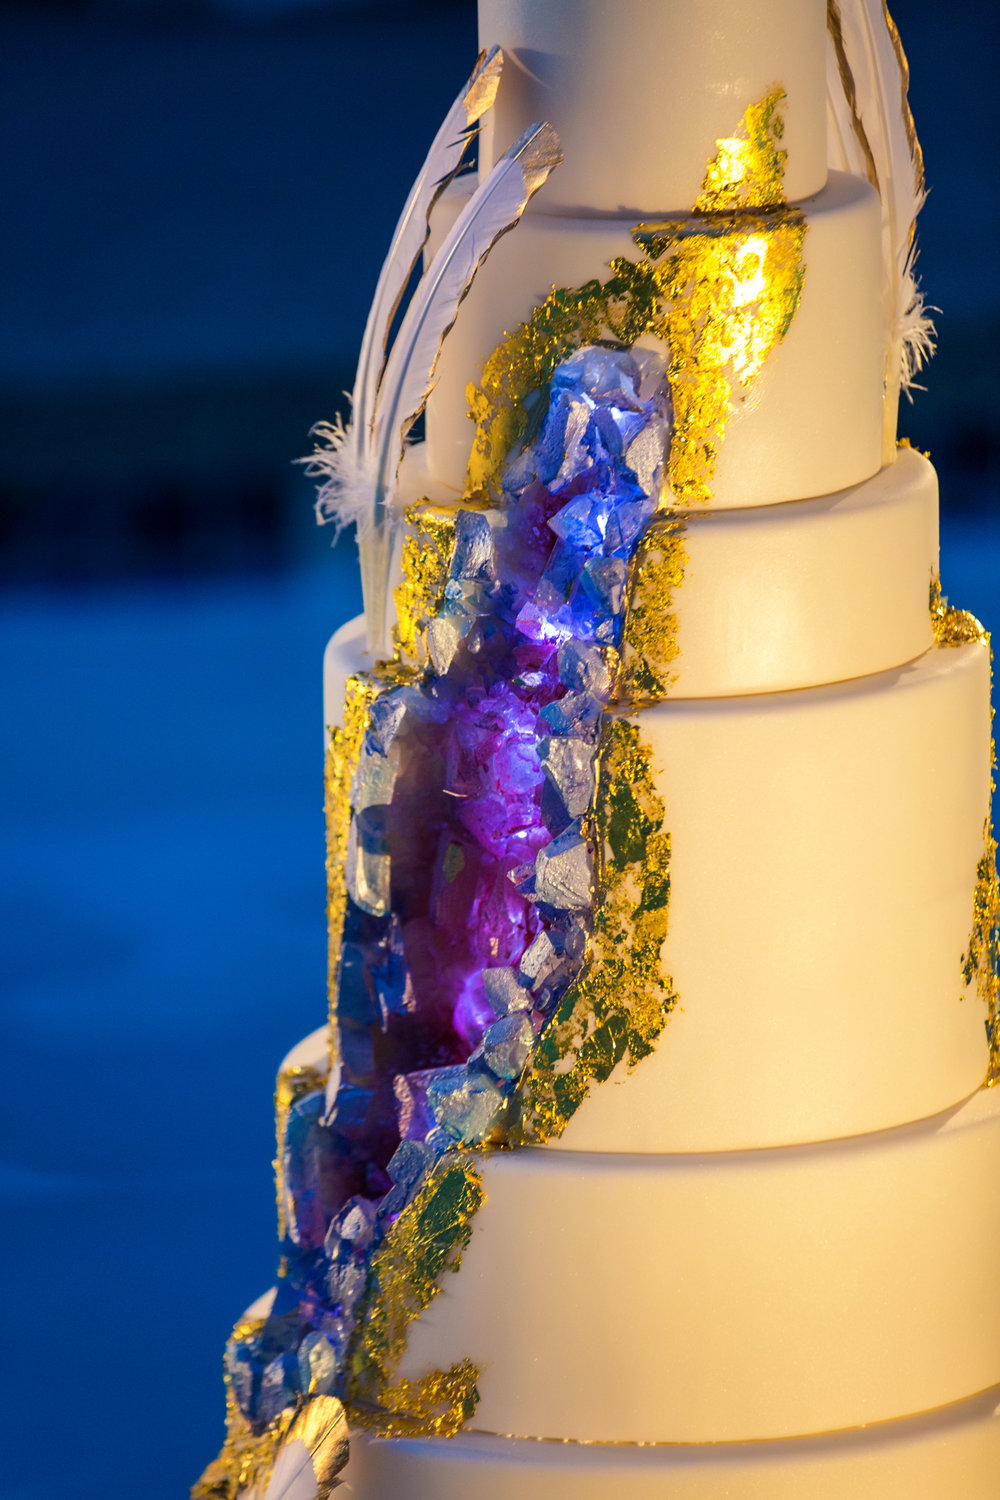 Geode cake with feathers. Jewel toned wedding centerpieces with gold accents. Wedding Planning by  Andrea Eppolito Events   ·  Photography by  Shandro Photo    ·  Wedding Venue  Four Seasons Las Vegas   ·  Floral and Decor by  Destination by Design   ·  Cake by  Four Seasons Las Vegas   ·  Chandeliers and Lighting by  LED Unplugged   ·  Dress by  Berta   and Menu by Alligator Soup